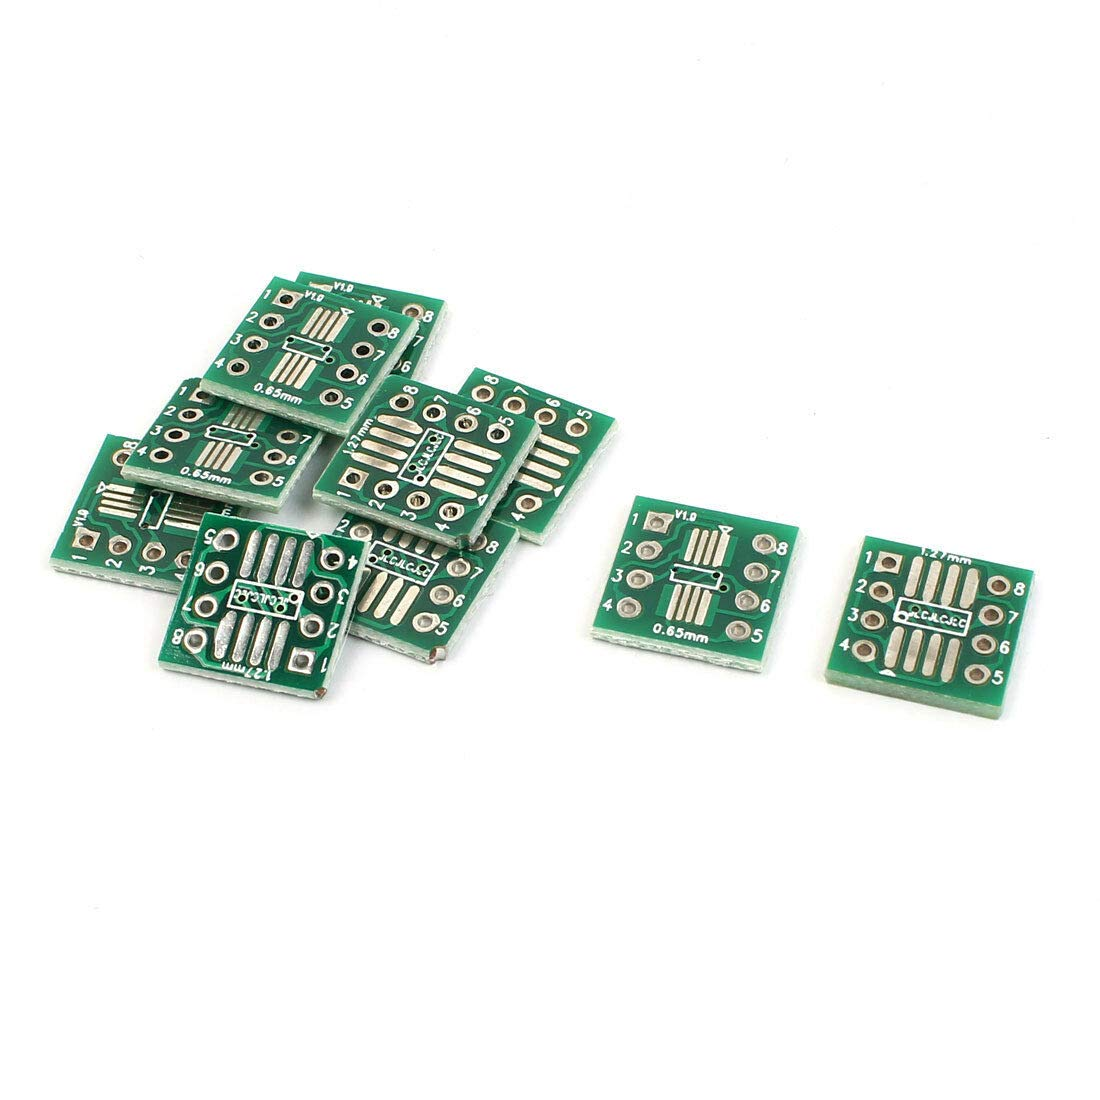 SODIAL 20Pcs Sop8 So8 Soic8 to Dip8 Interposer Board PCB Board Adapter Plate by SODIAL (Image #3)